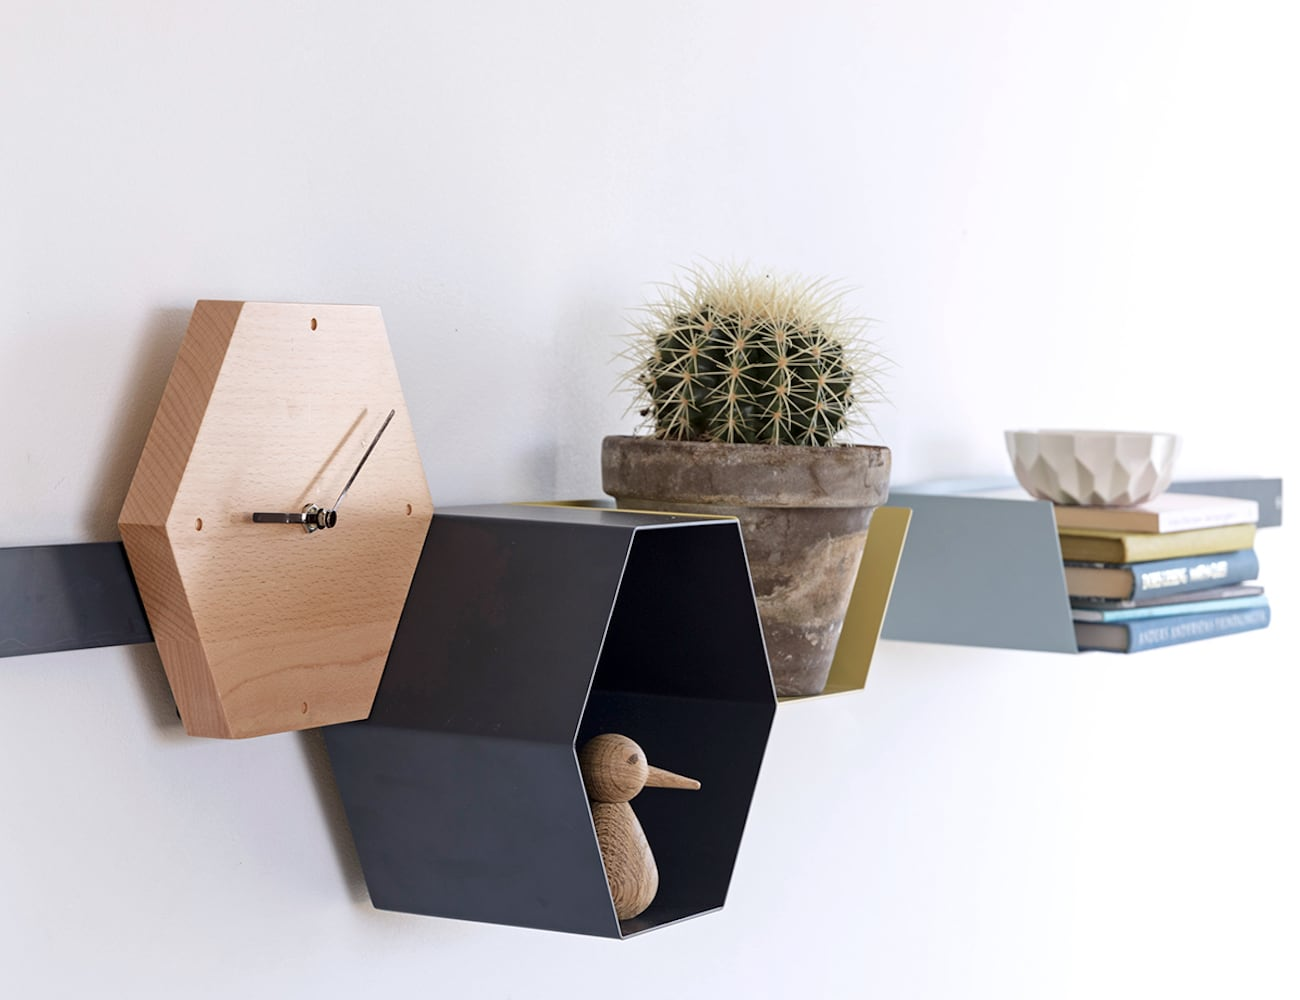 Hans Thyge and Co Hexagonal Modular Shelving Unit is a creative storage solution